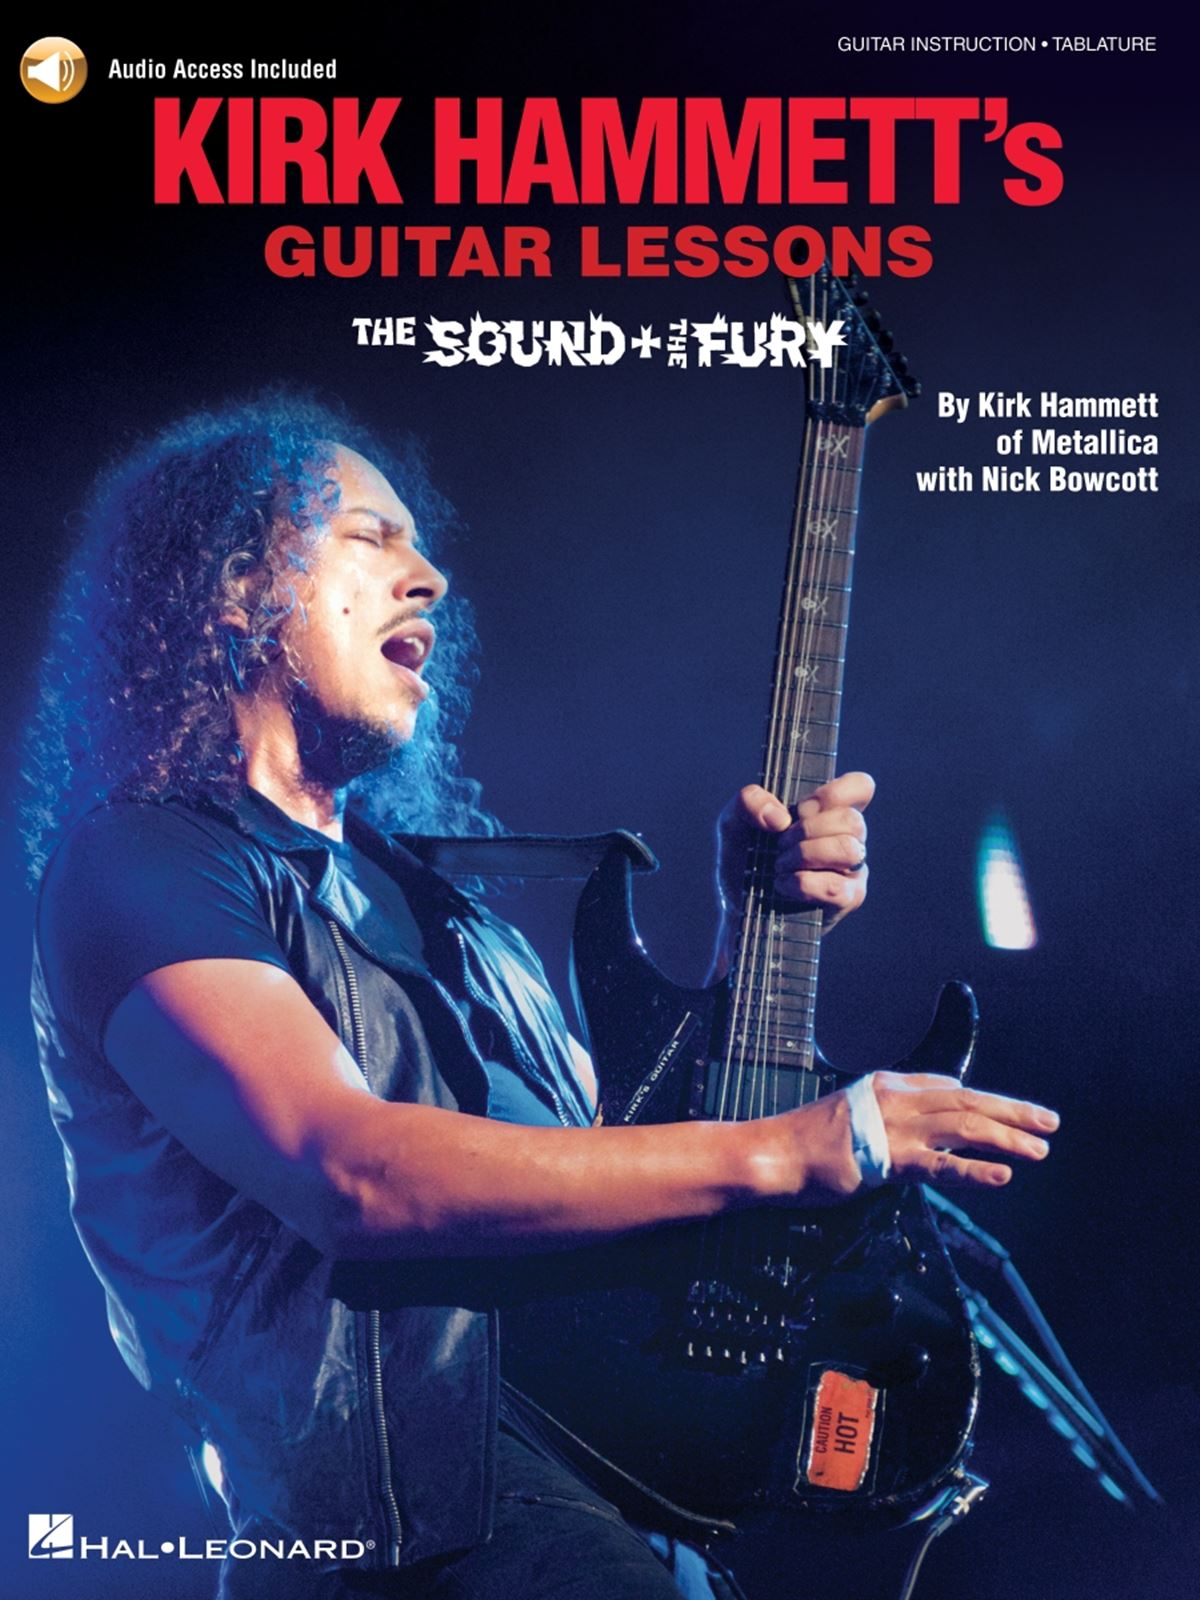 Kirk Hammett's Guitar Lessons:The Sound and The Fury